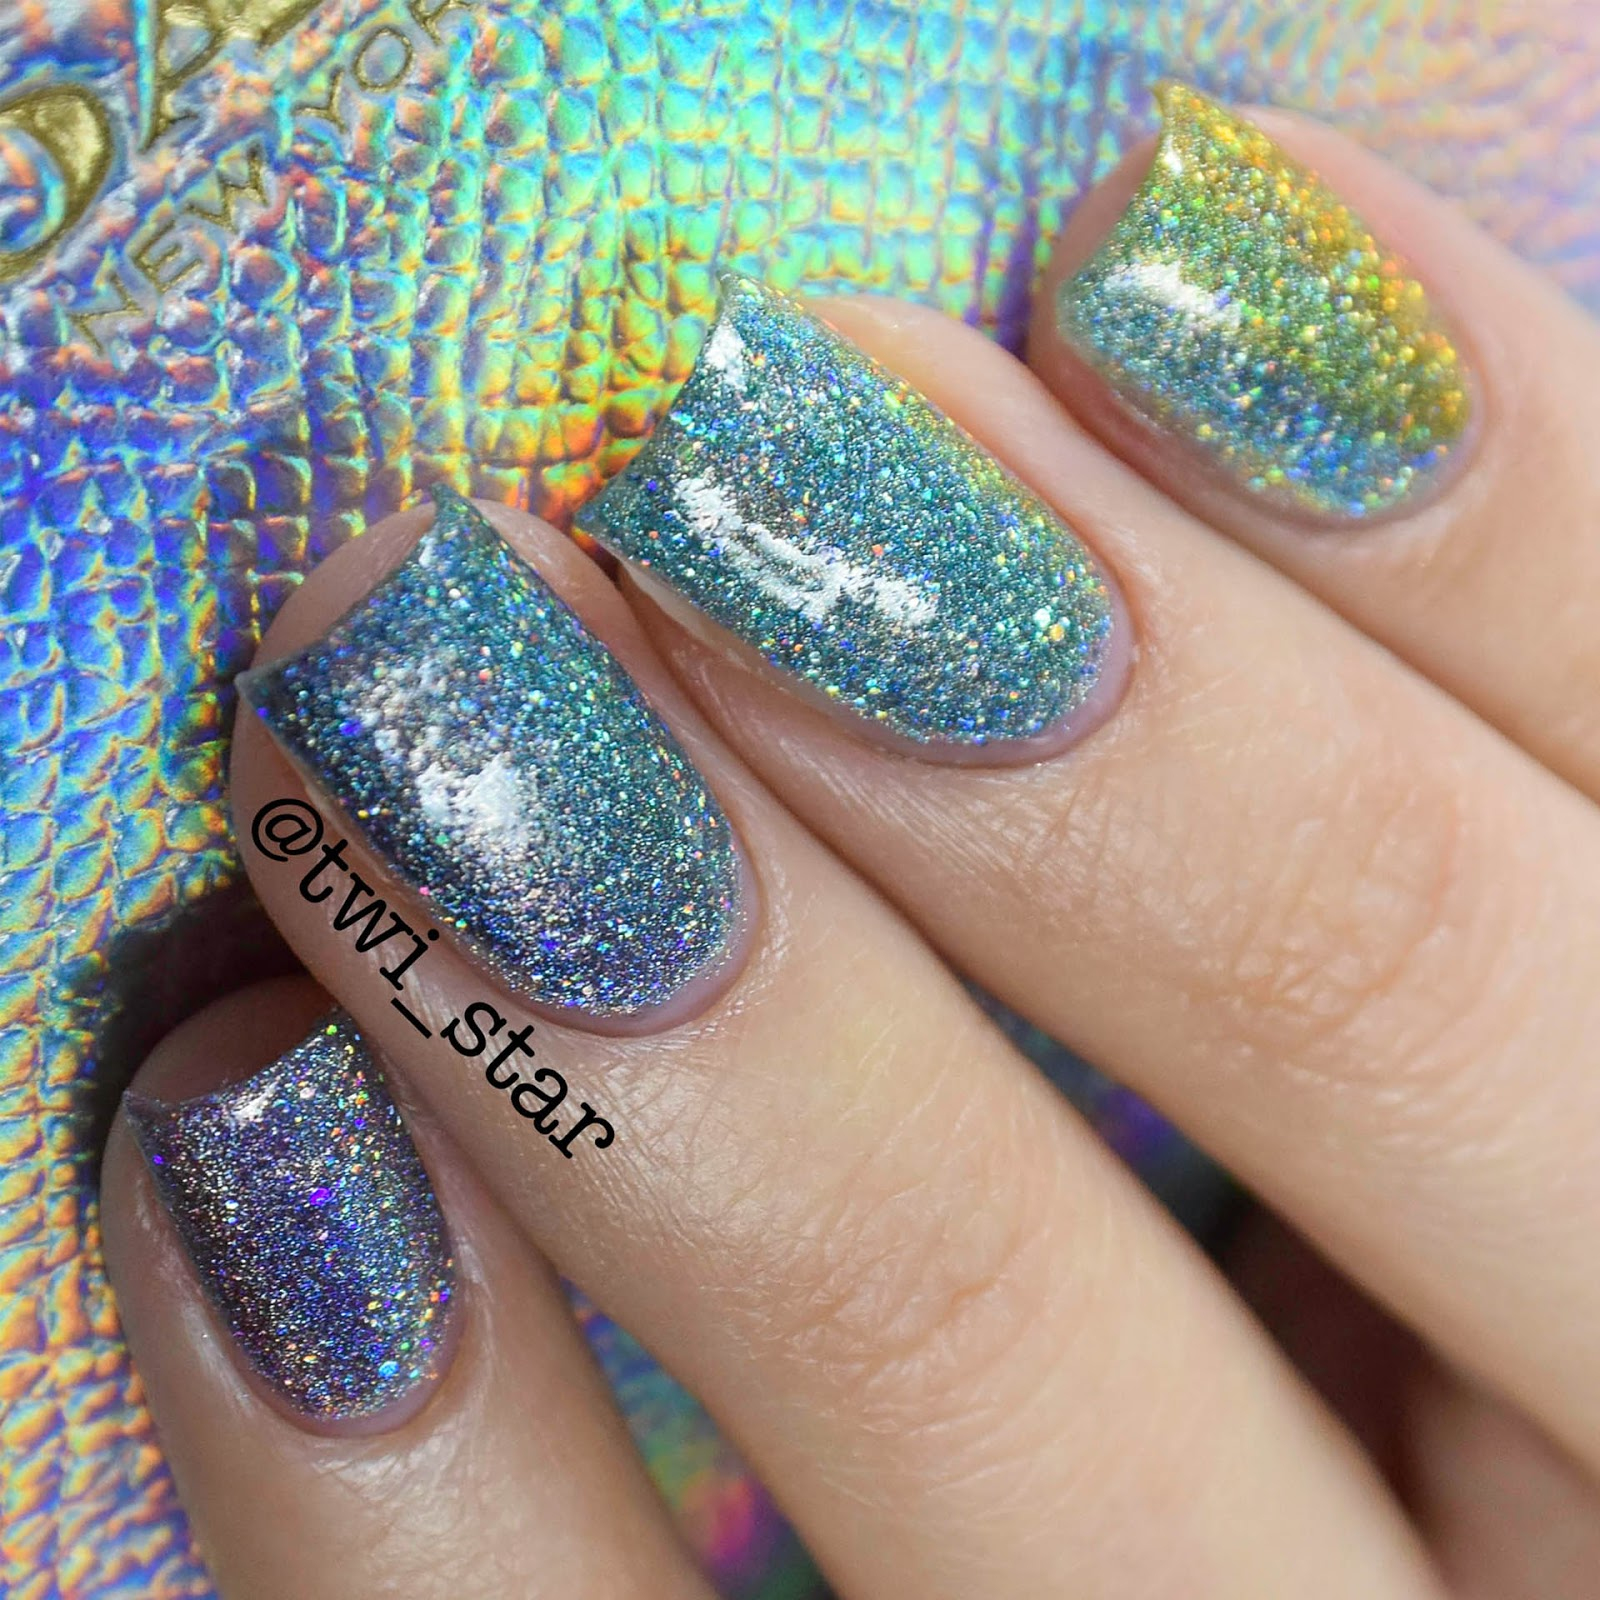 Twi Star Nail Art Blog Coach Holo Purse Inspired Rainbow Gradient